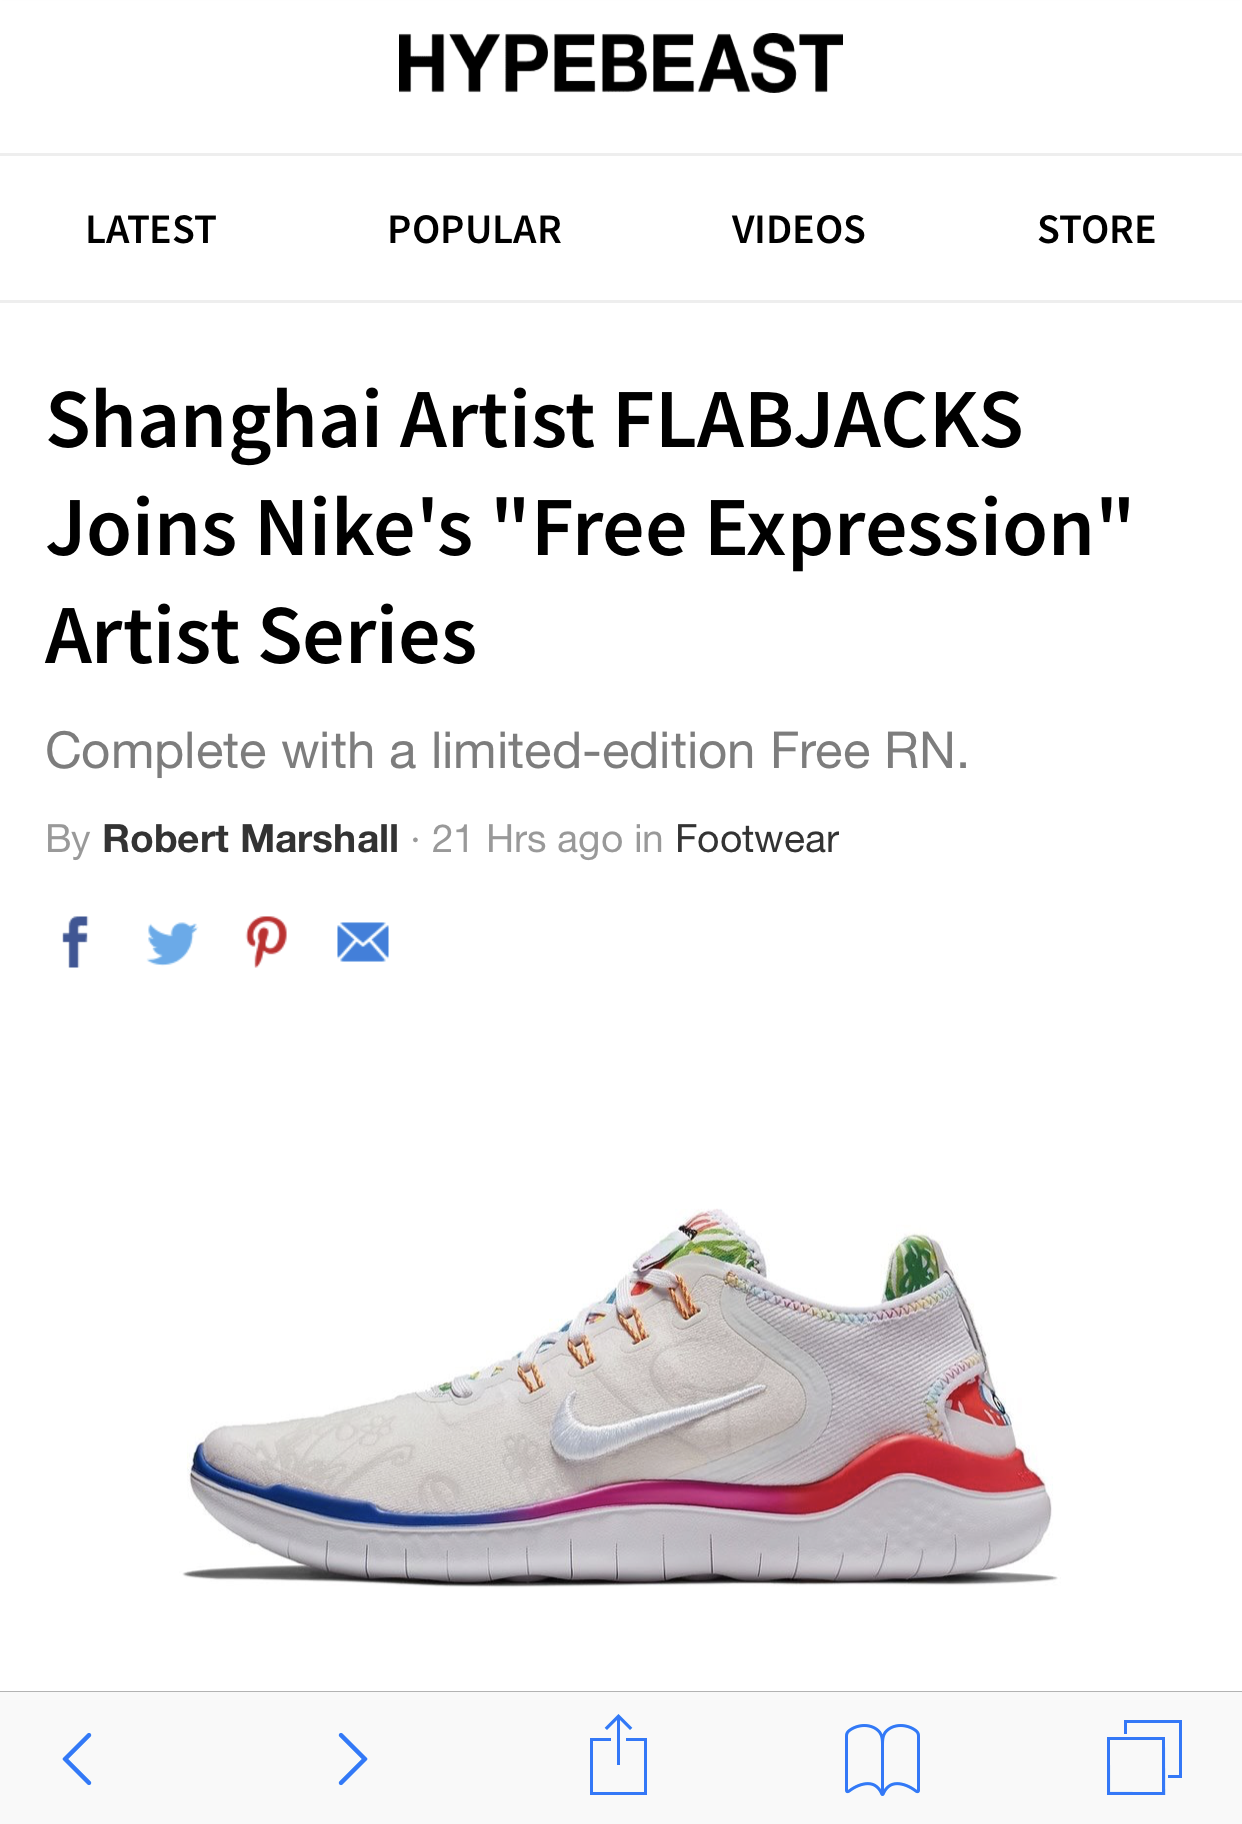 e91d4c82450e4 Nike X Flapjacks Free Rn 2018 T Shirt For Your Feet